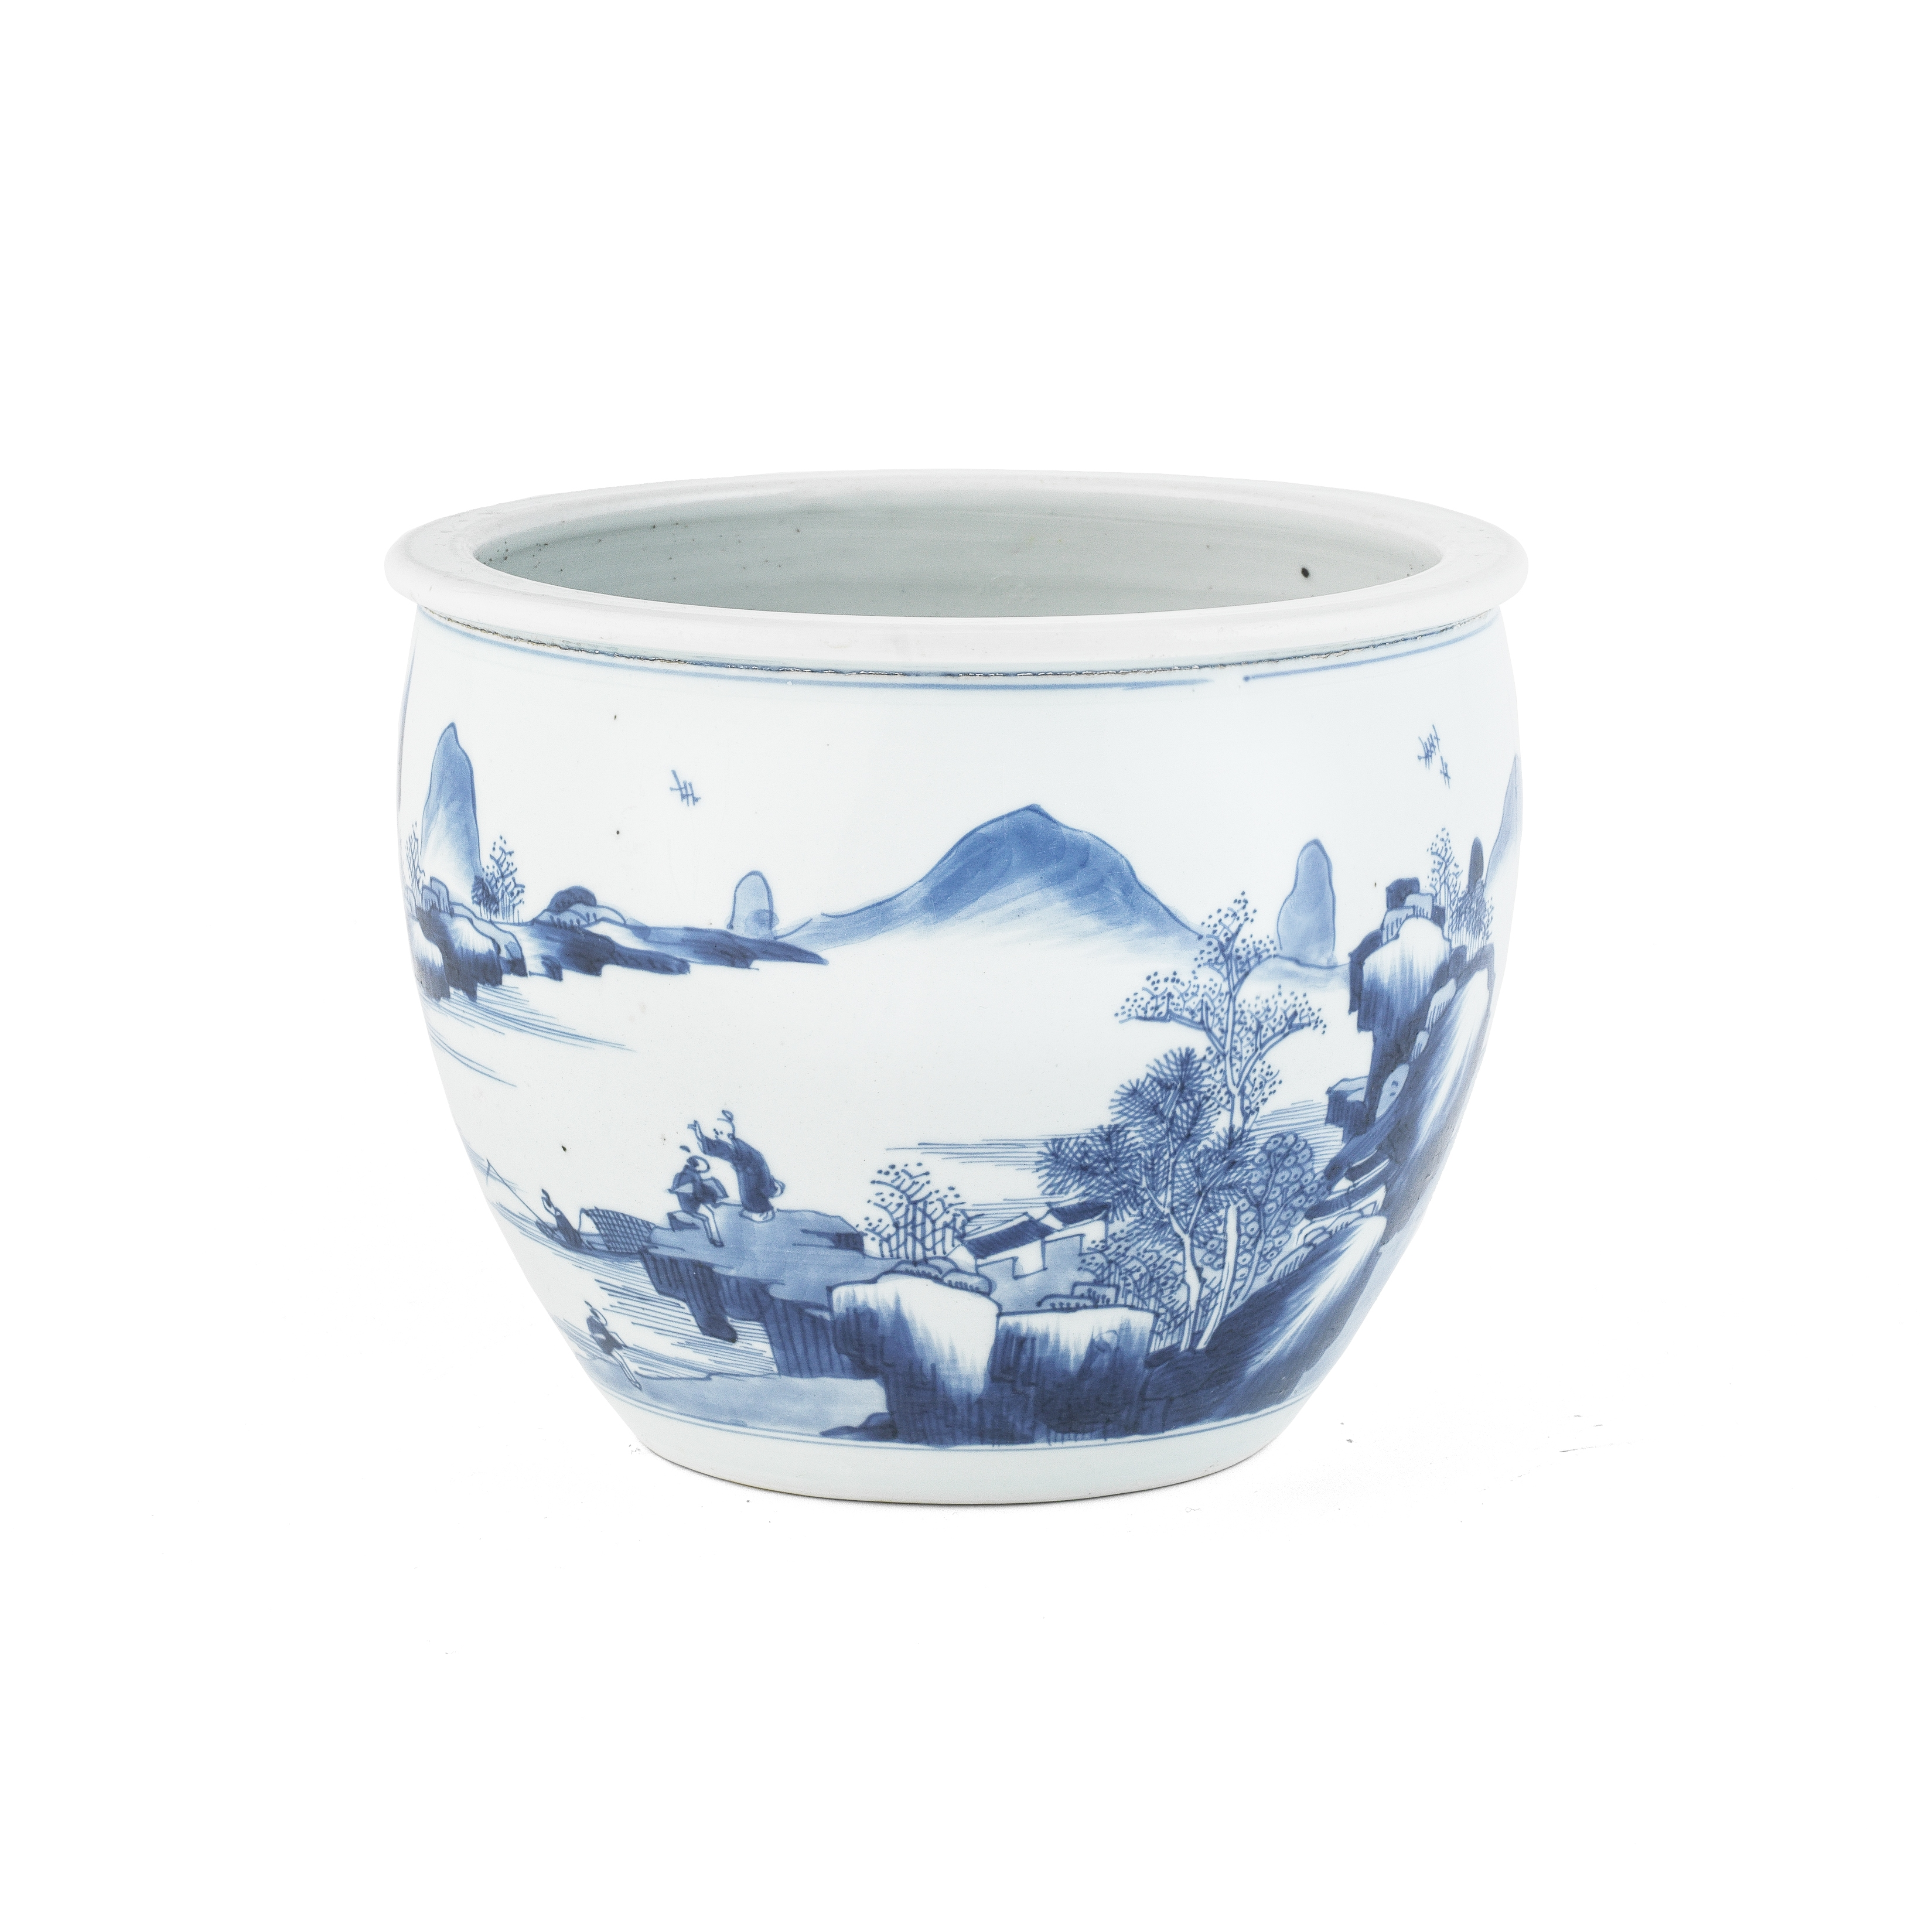 A BLUE AND WHITE 'LANDSCAPE' BOWL 18th century